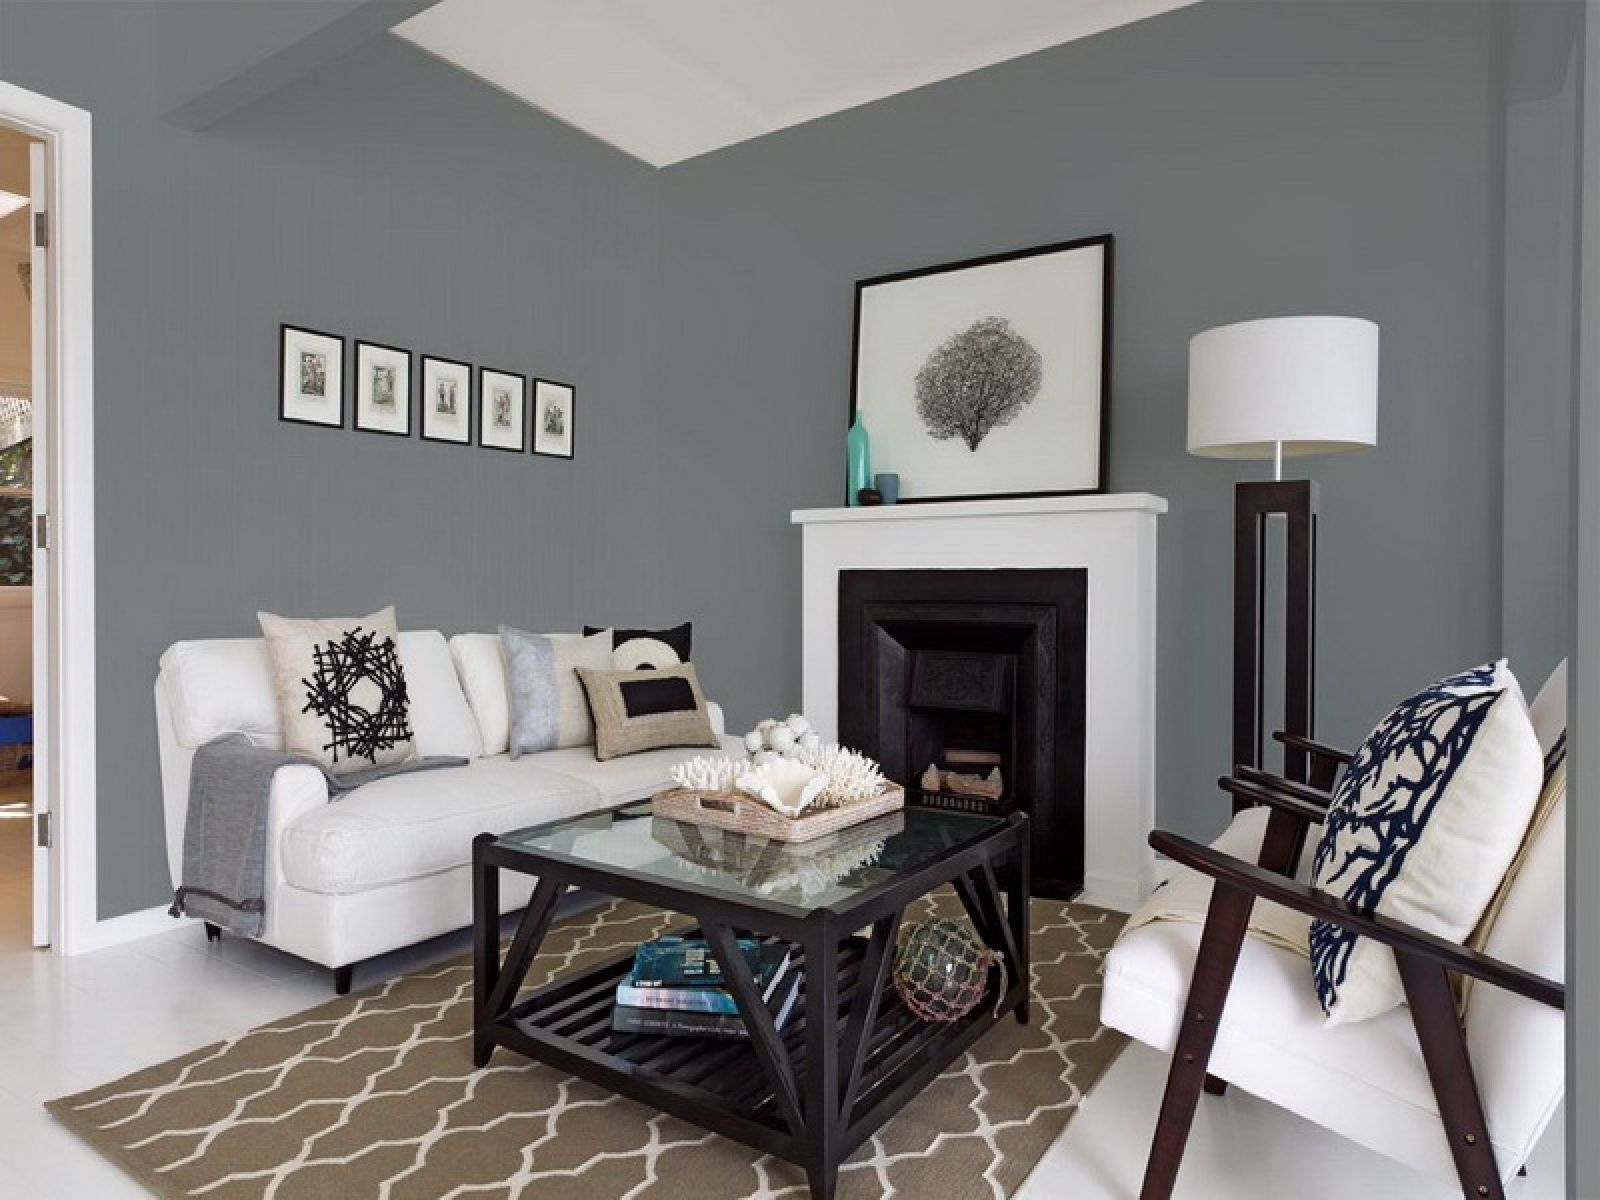 Grey Room Paint Ideas Different tones of grey give this bedroom a